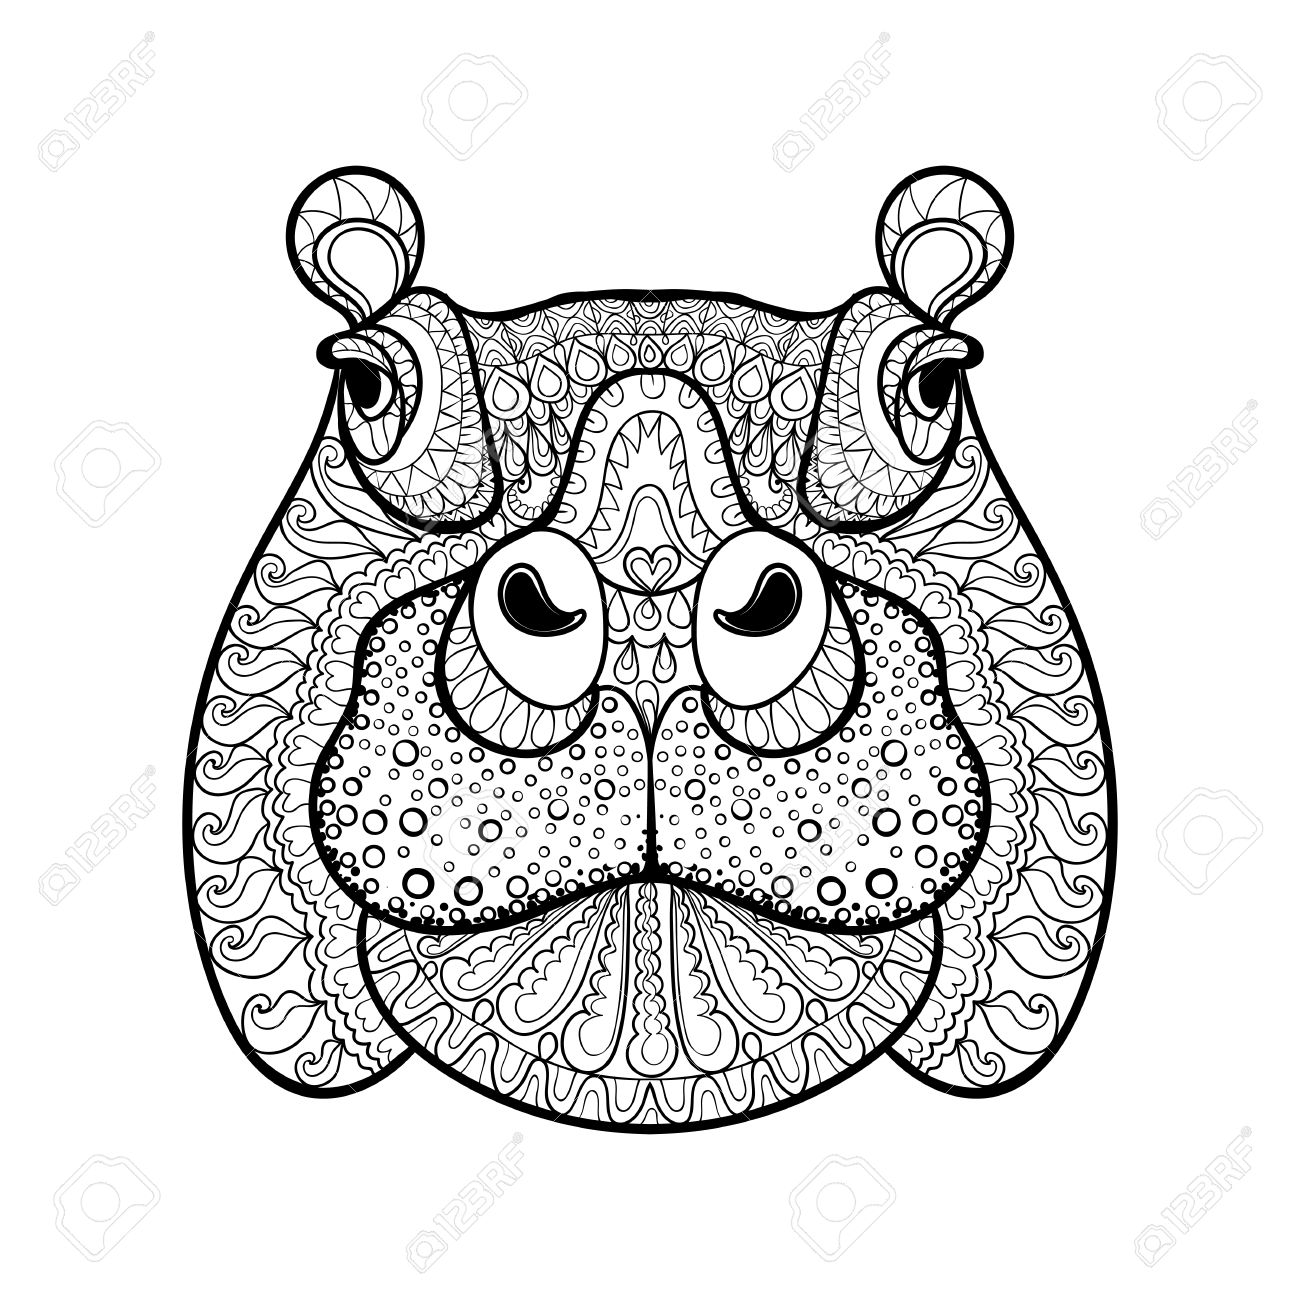 Hand Drawn Tribal Hippopotamus Head Animal Totem For Adult Coloring Page In Zentangle Style